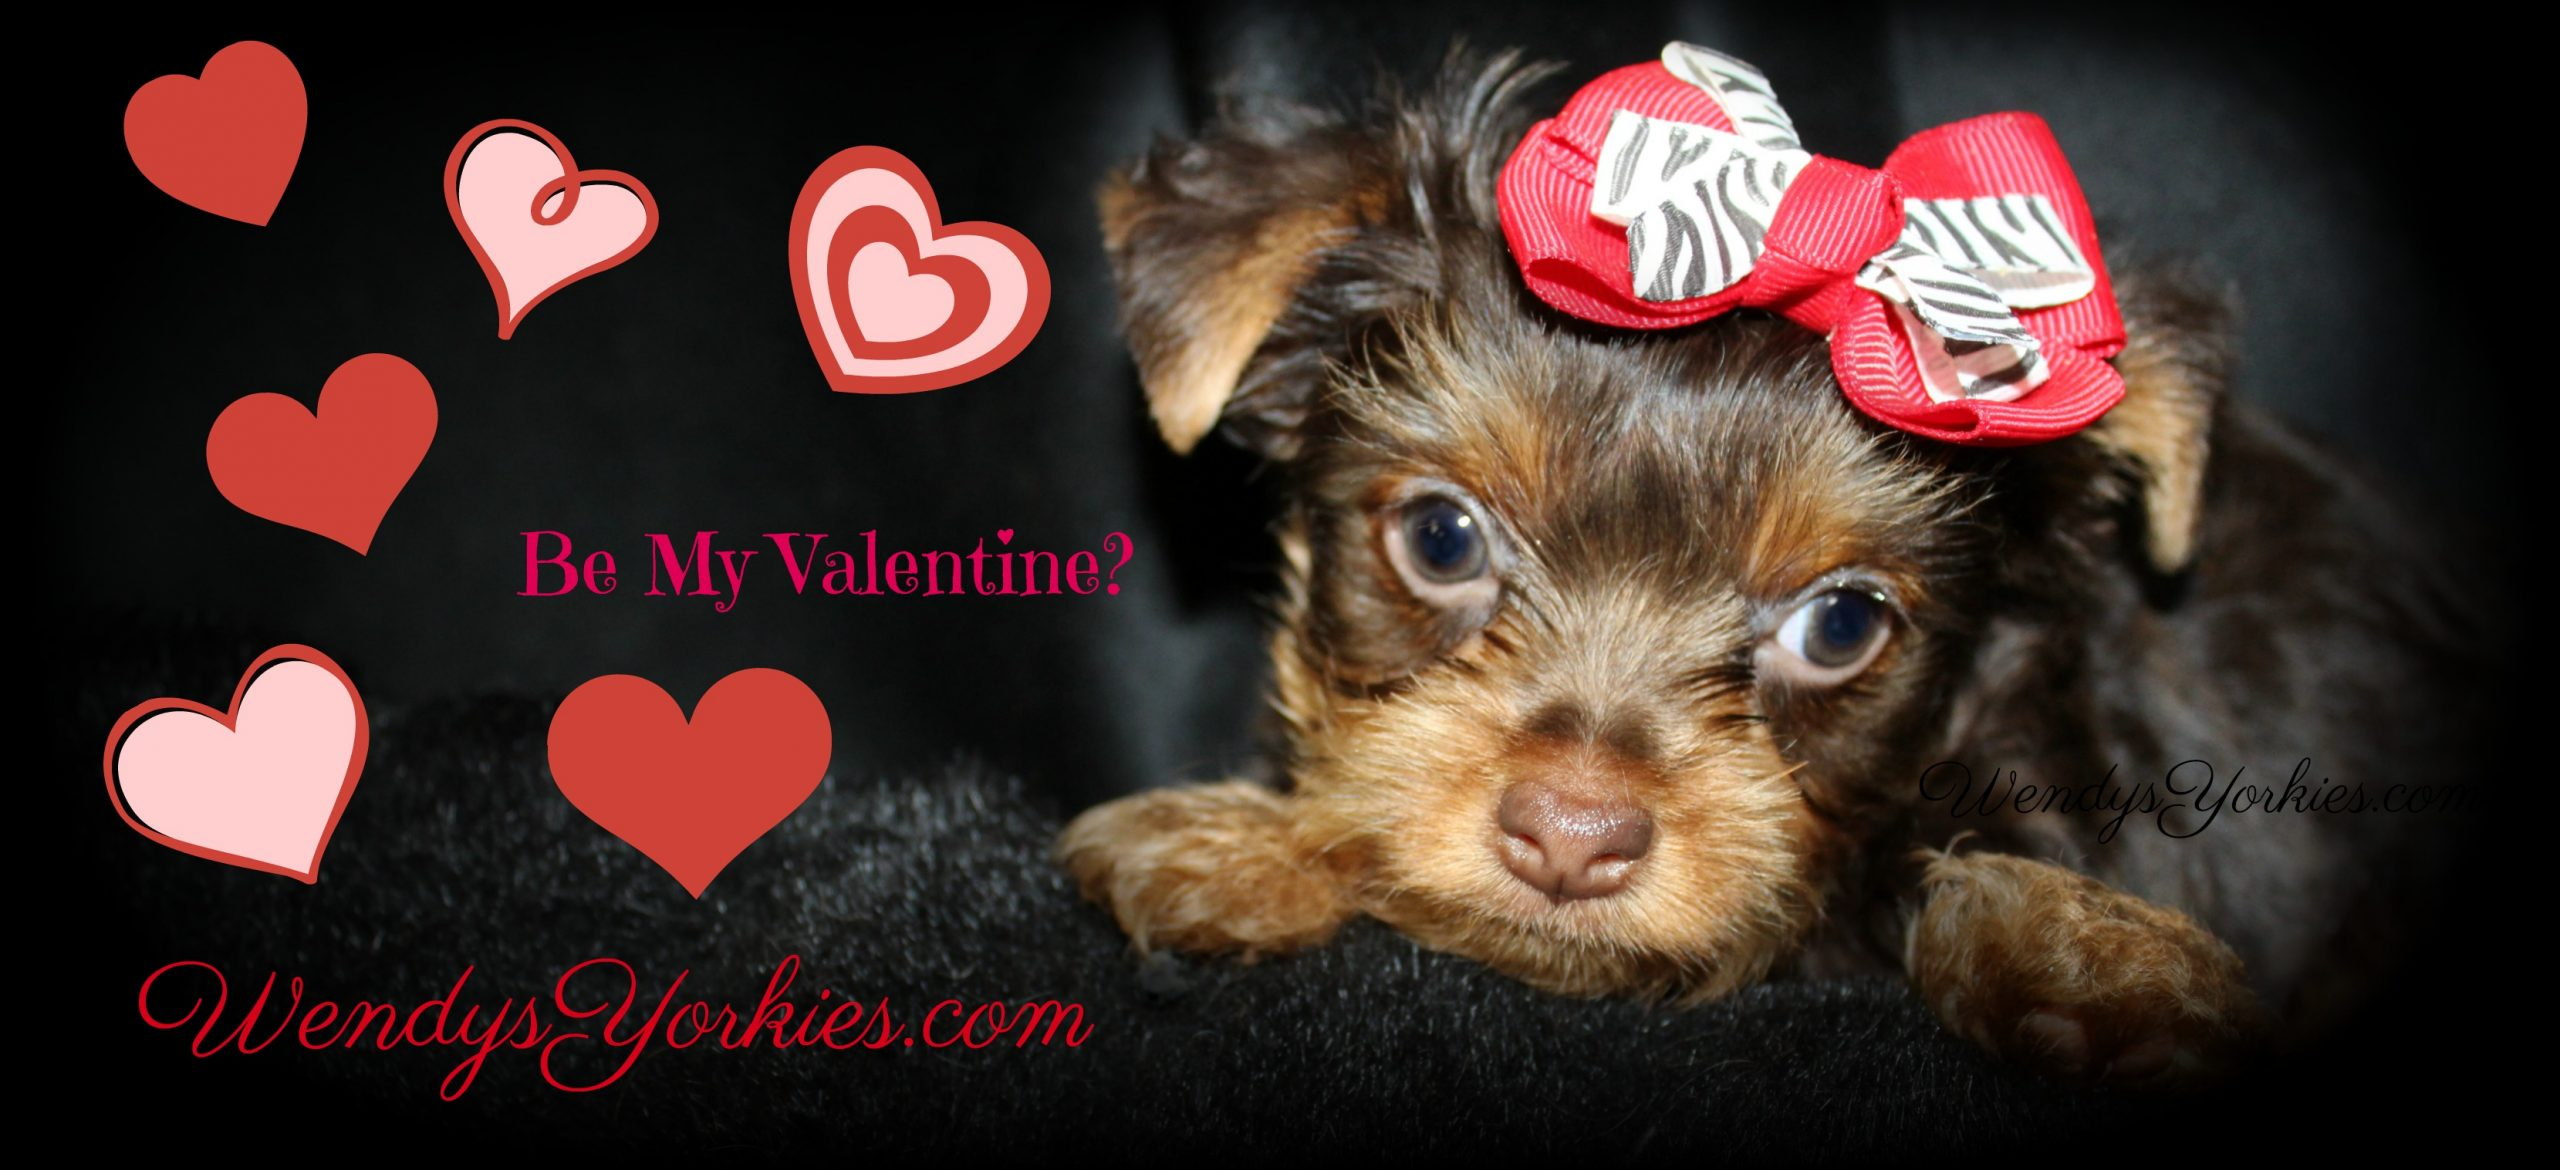 Chocolate Yorkie Puppy for sale in Texas, Kimber, WendysYorkies.com